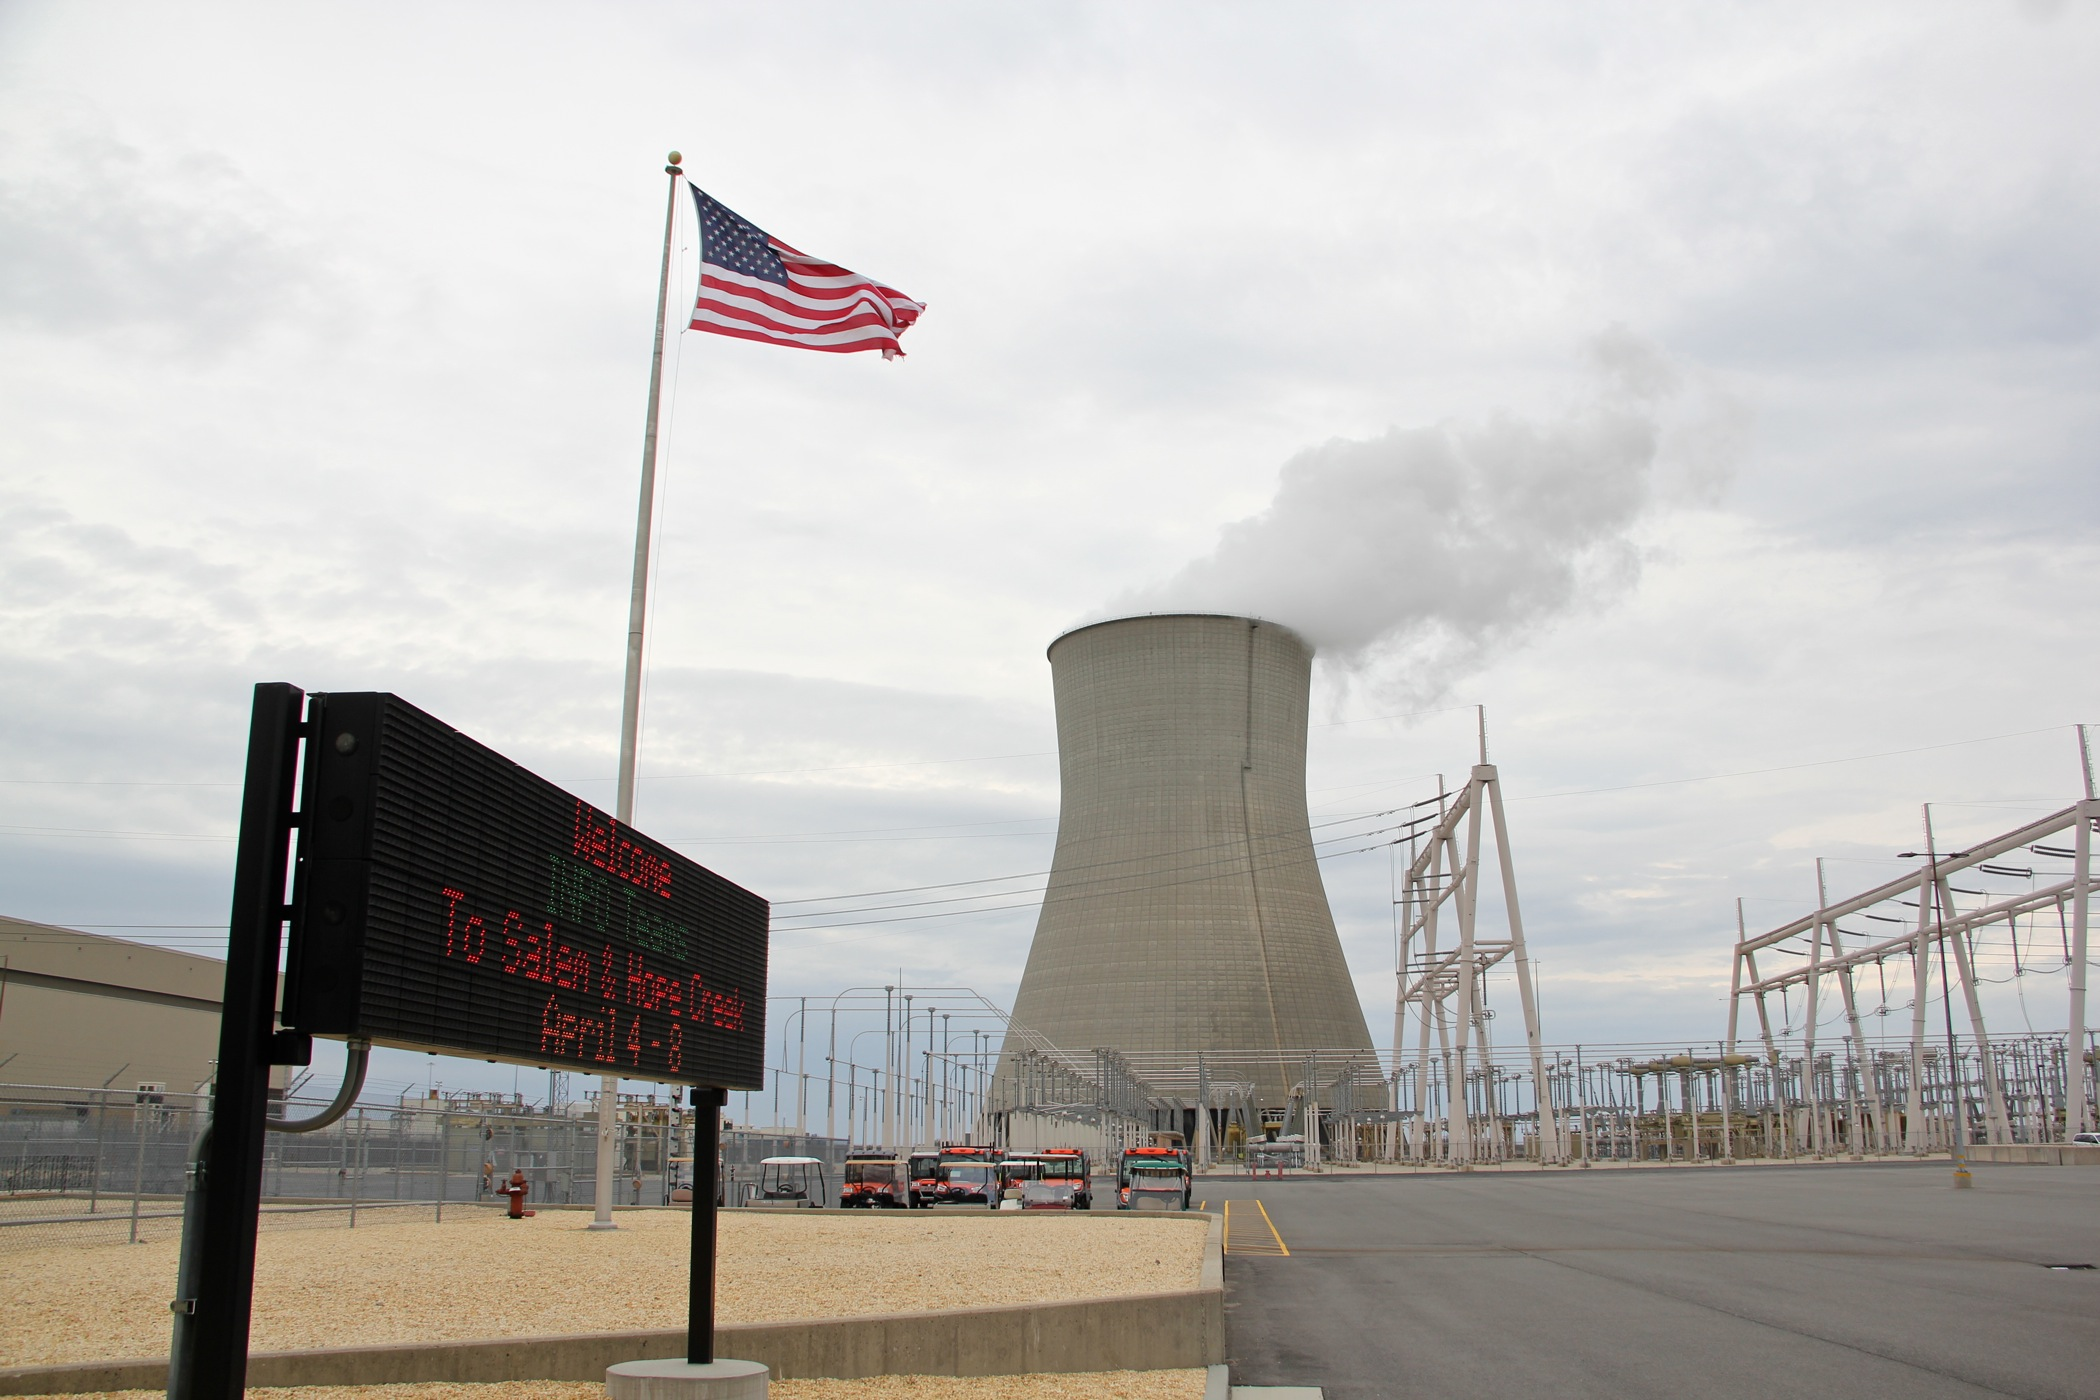 N.J. approves $300 million annual subsidy for nuclear industry that threatened shutdown